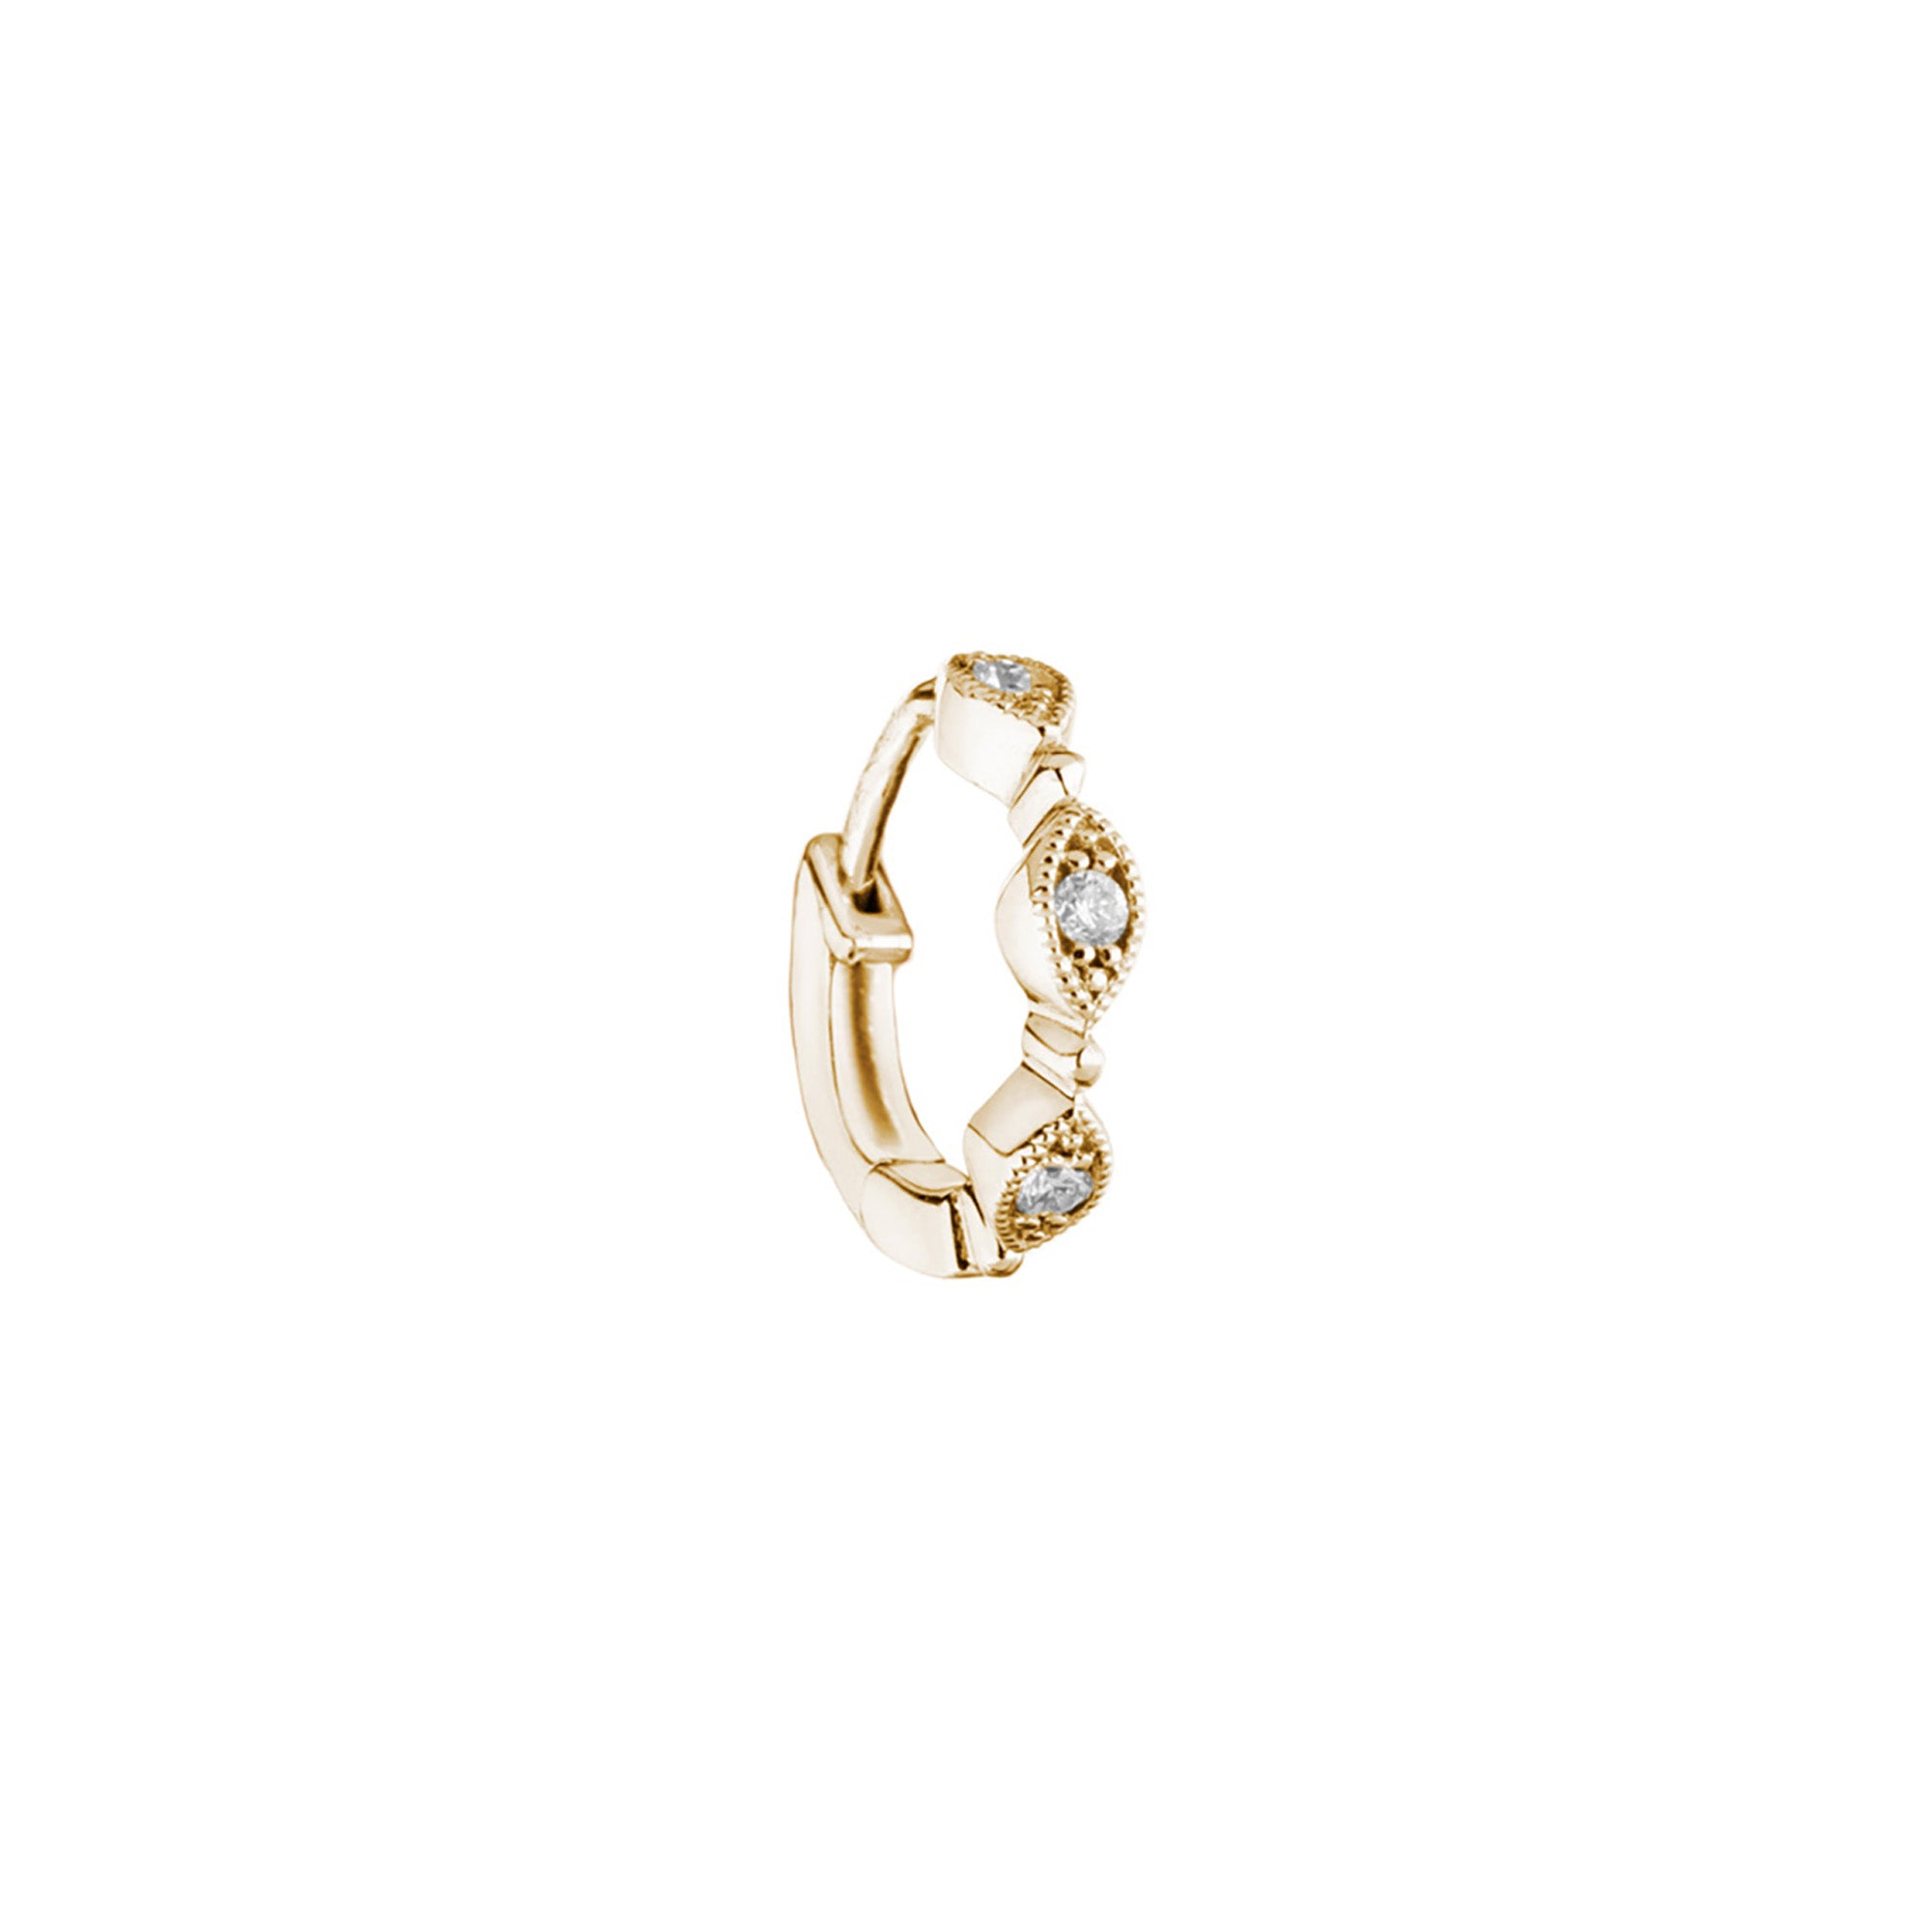 Stone Paris Yasmine Tiny Hoop - Gold - Earrings - Broken English Jewelry